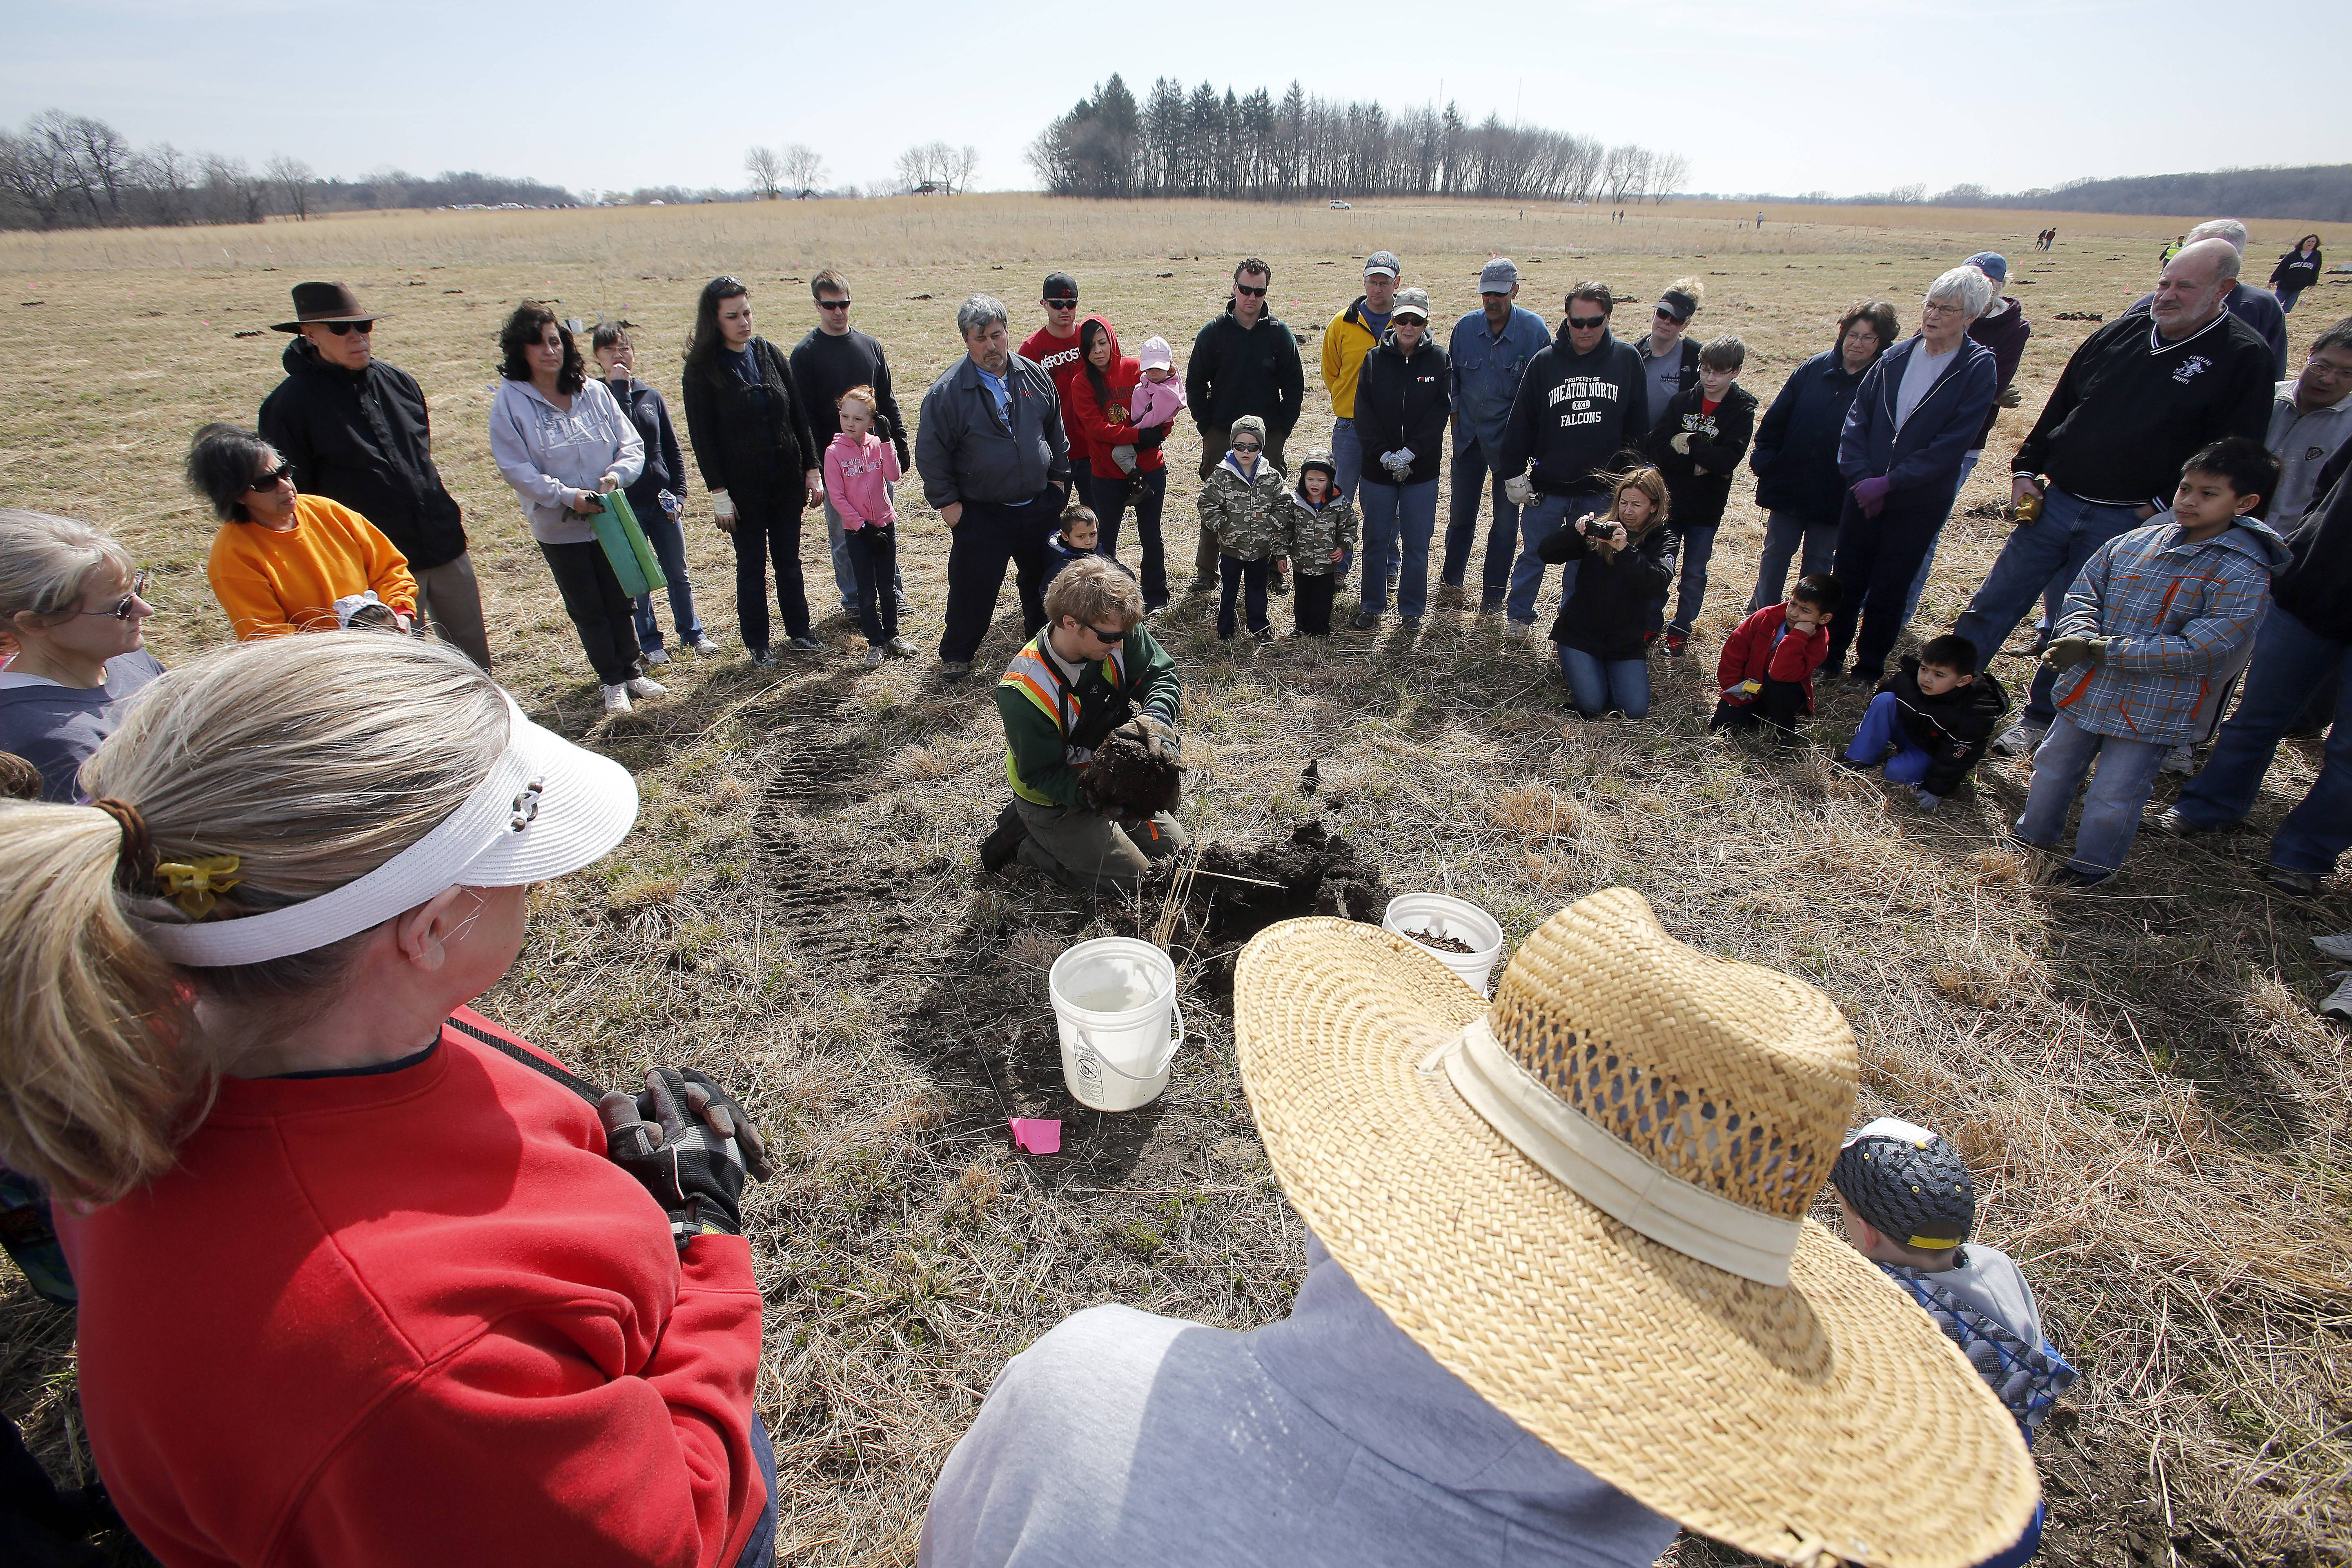 Andy Olnas, a restoration technician with the Kane County Forest Preserve District, shows a group of people how to properly plant a tree. Hundreds of volunteers ventured into Fitchie Creek Forest Preserve in Elgin Saturday to plant some 400 trees in honor of Earth Day.